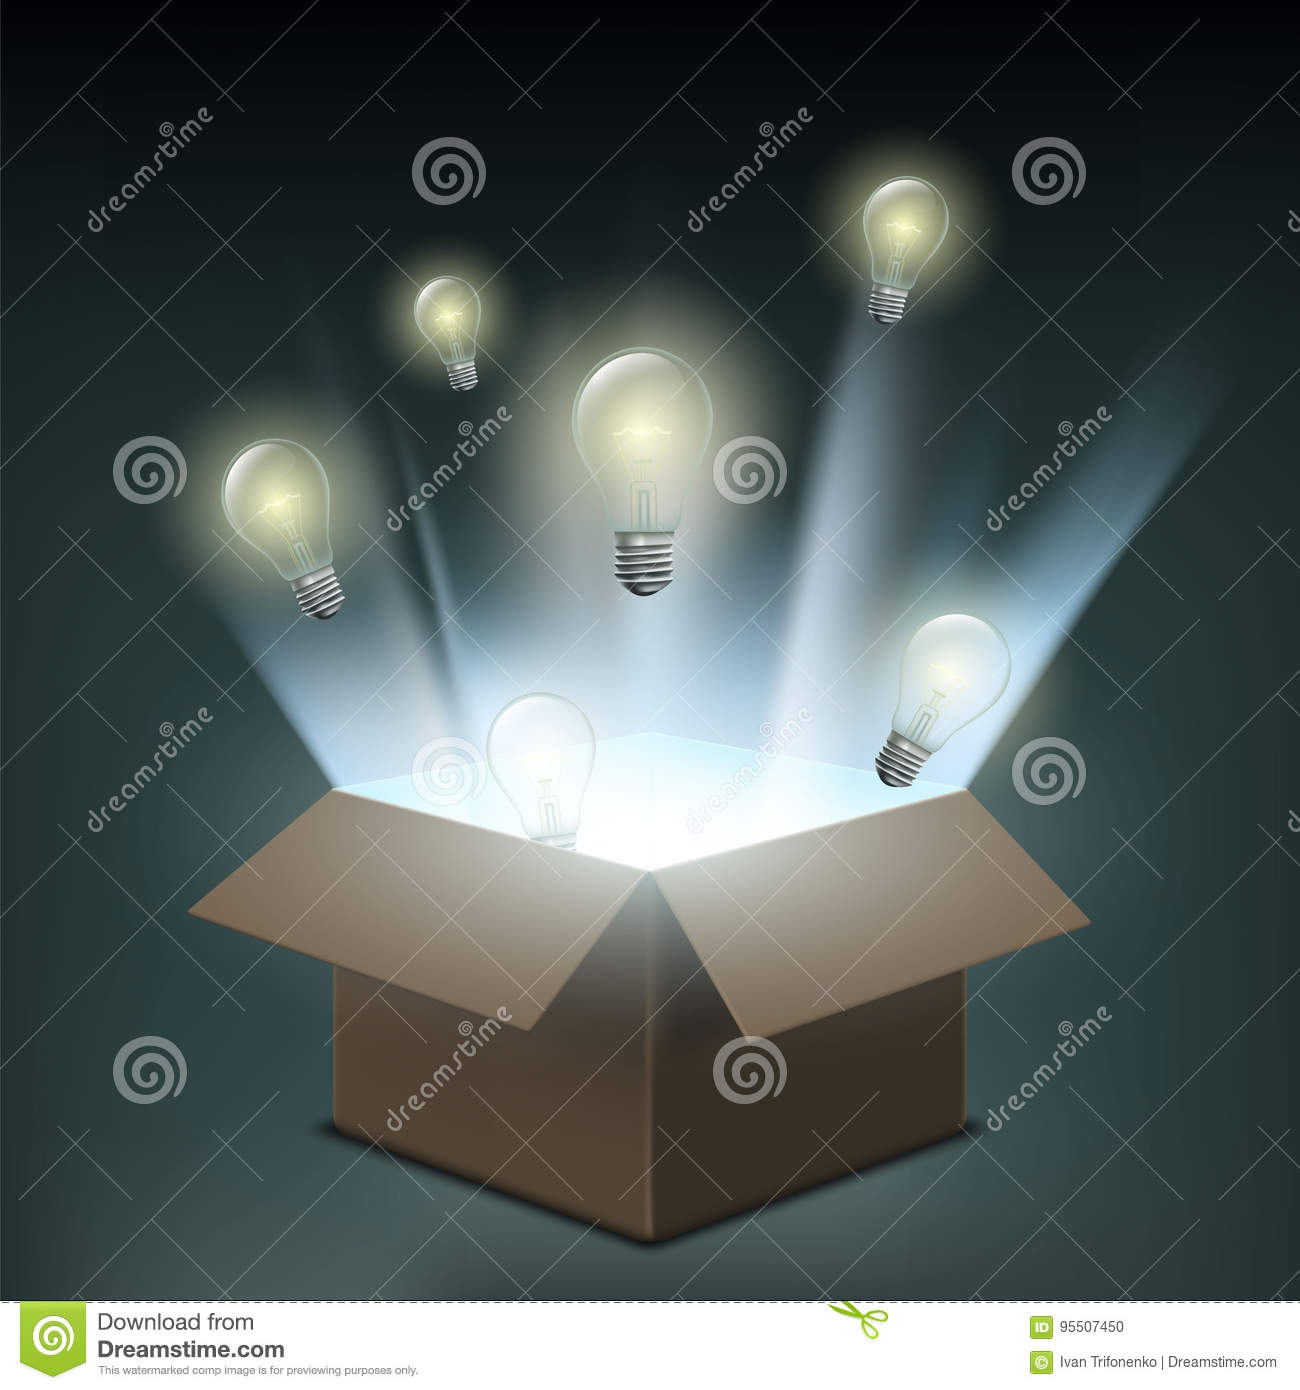 hight resolution of light bulbs fly out of a cardboard box symbol of creative innovation and business start up power of electricity and technological discoveries